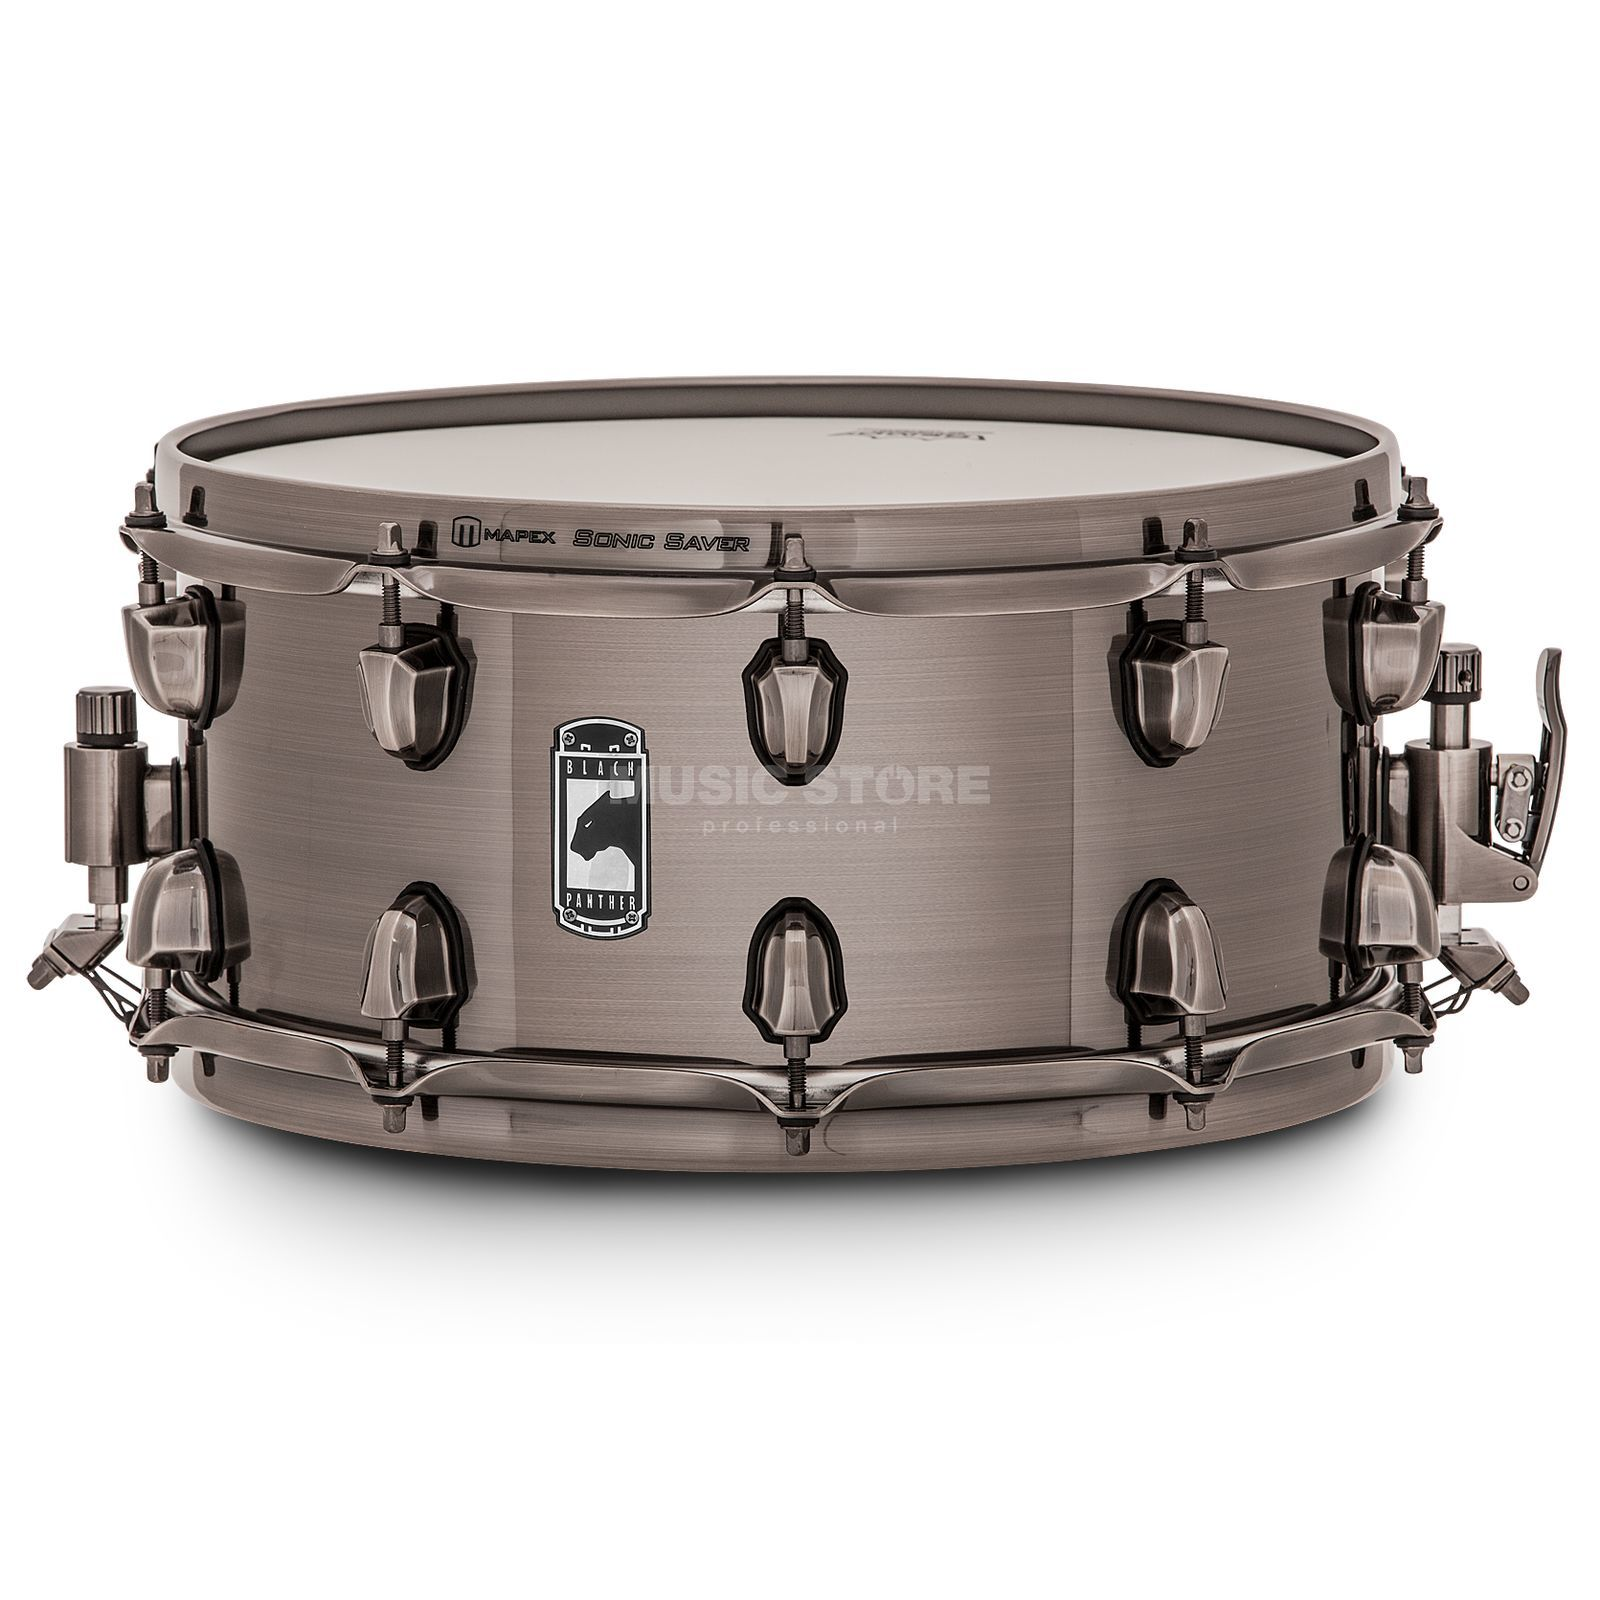 "Mapex zwart Panther Snare 14""x6,5"", ""The Machete"" Productafbeelding"